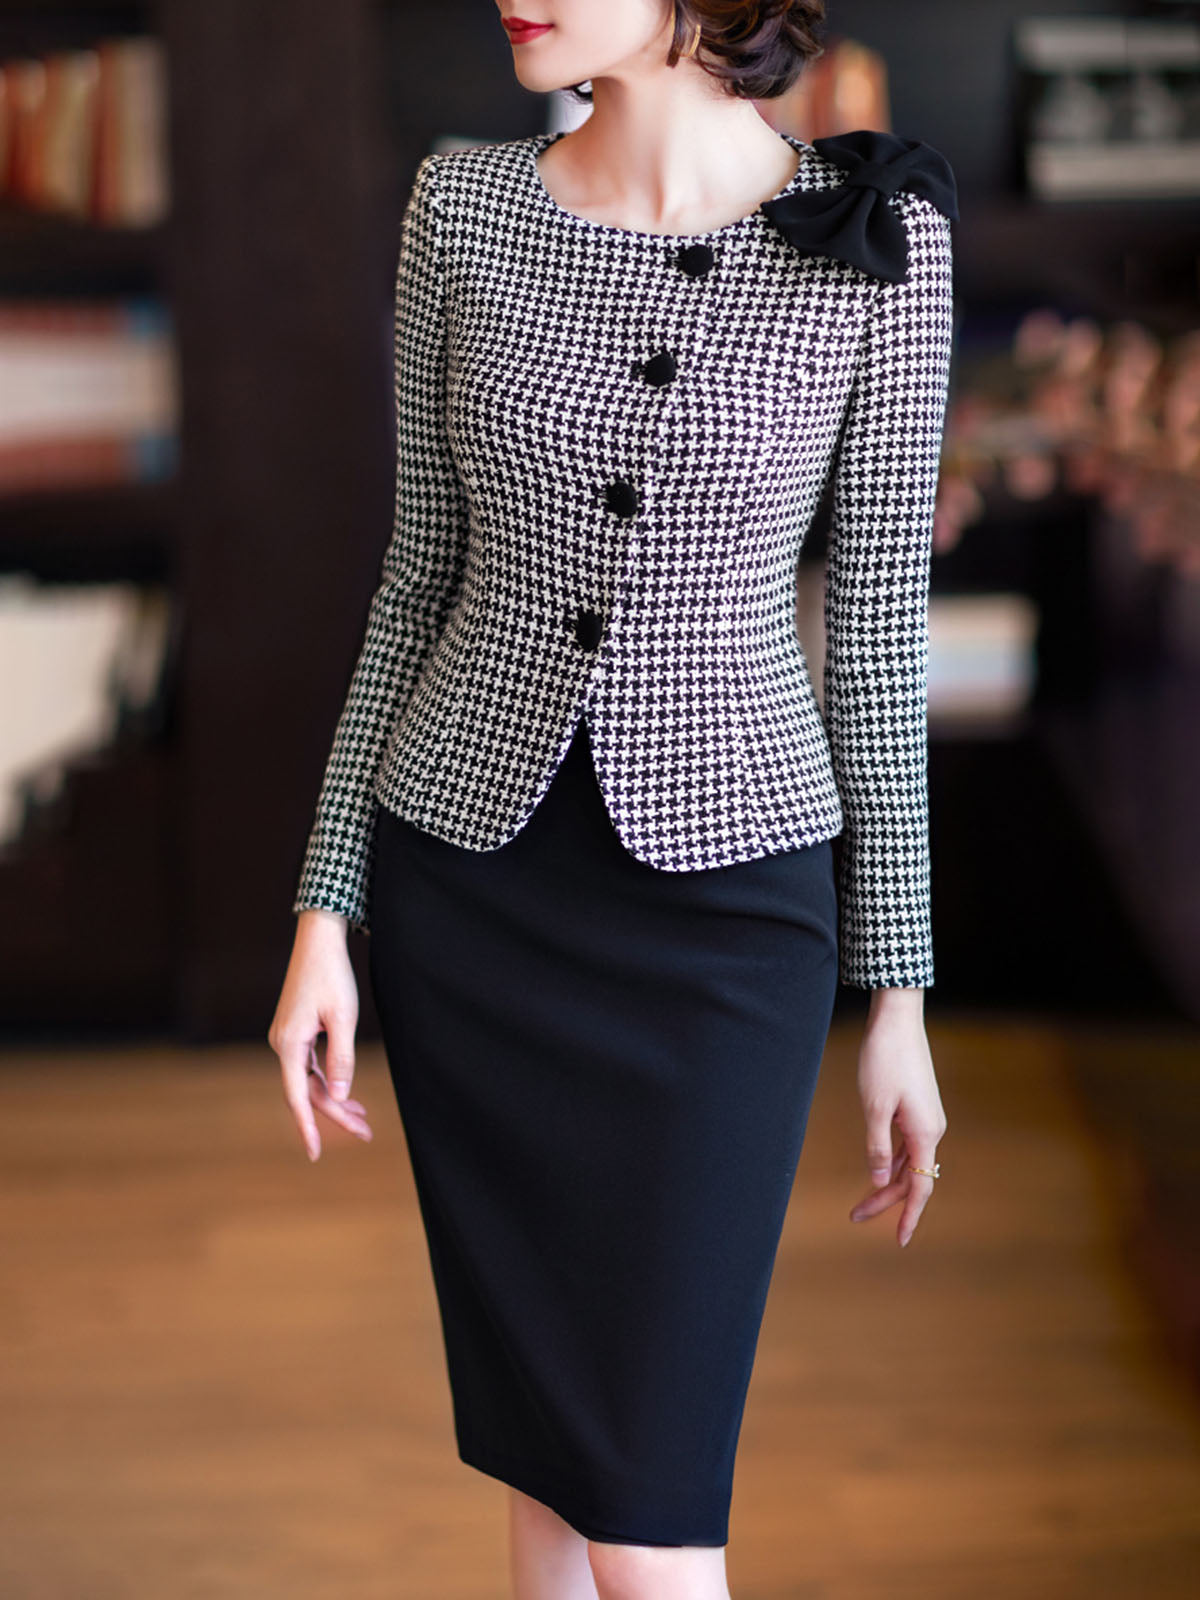 Houndstooth Sheath Elegant Top with Skirt Set